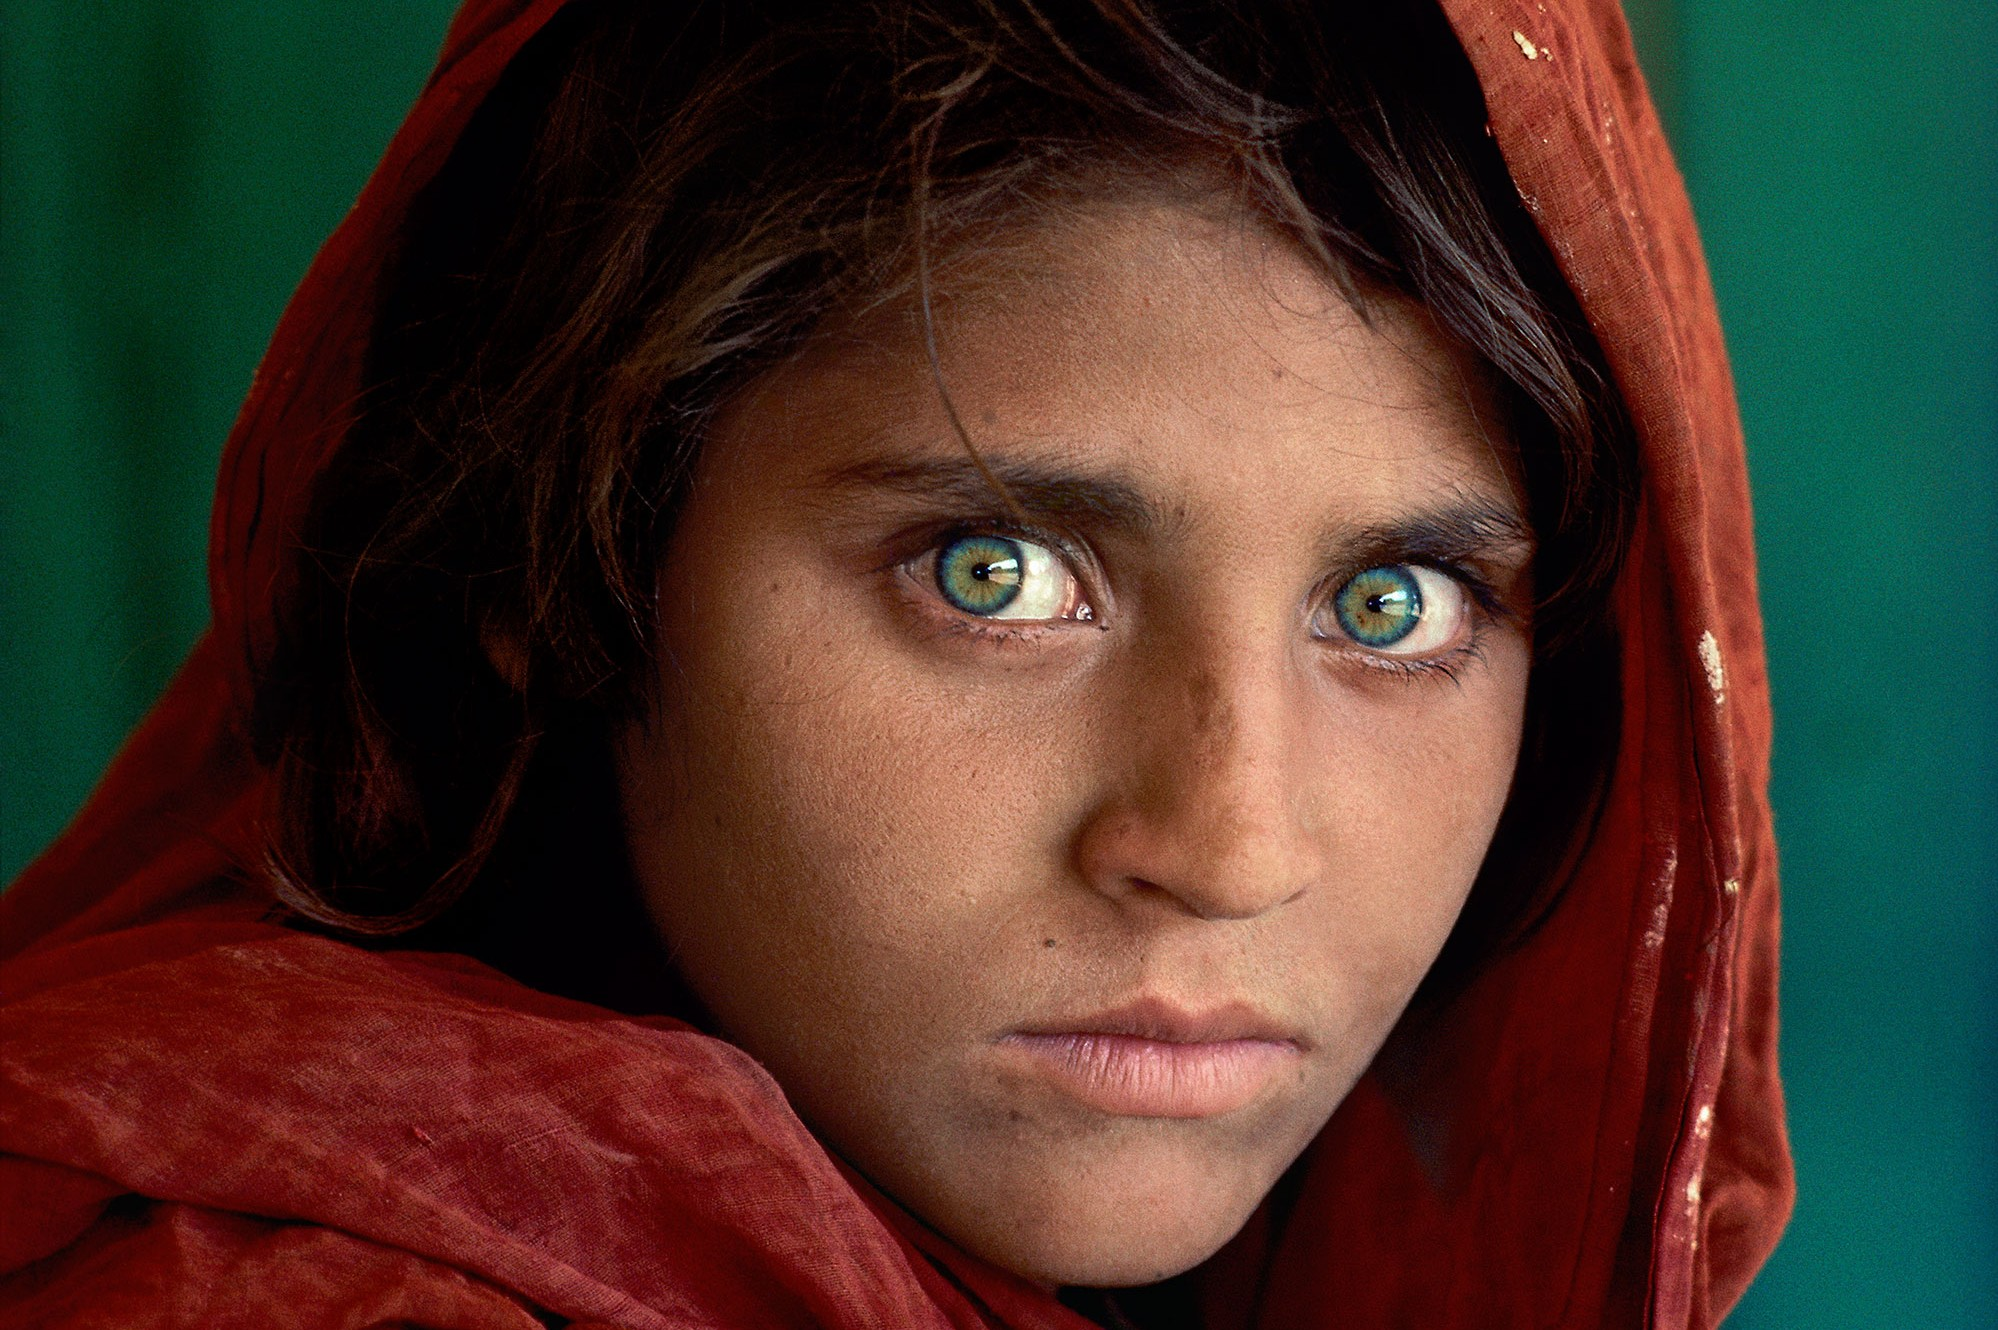 Steve McCurry, Peshawar, Pakistan, 1984 (particolare) © Steve McCurry